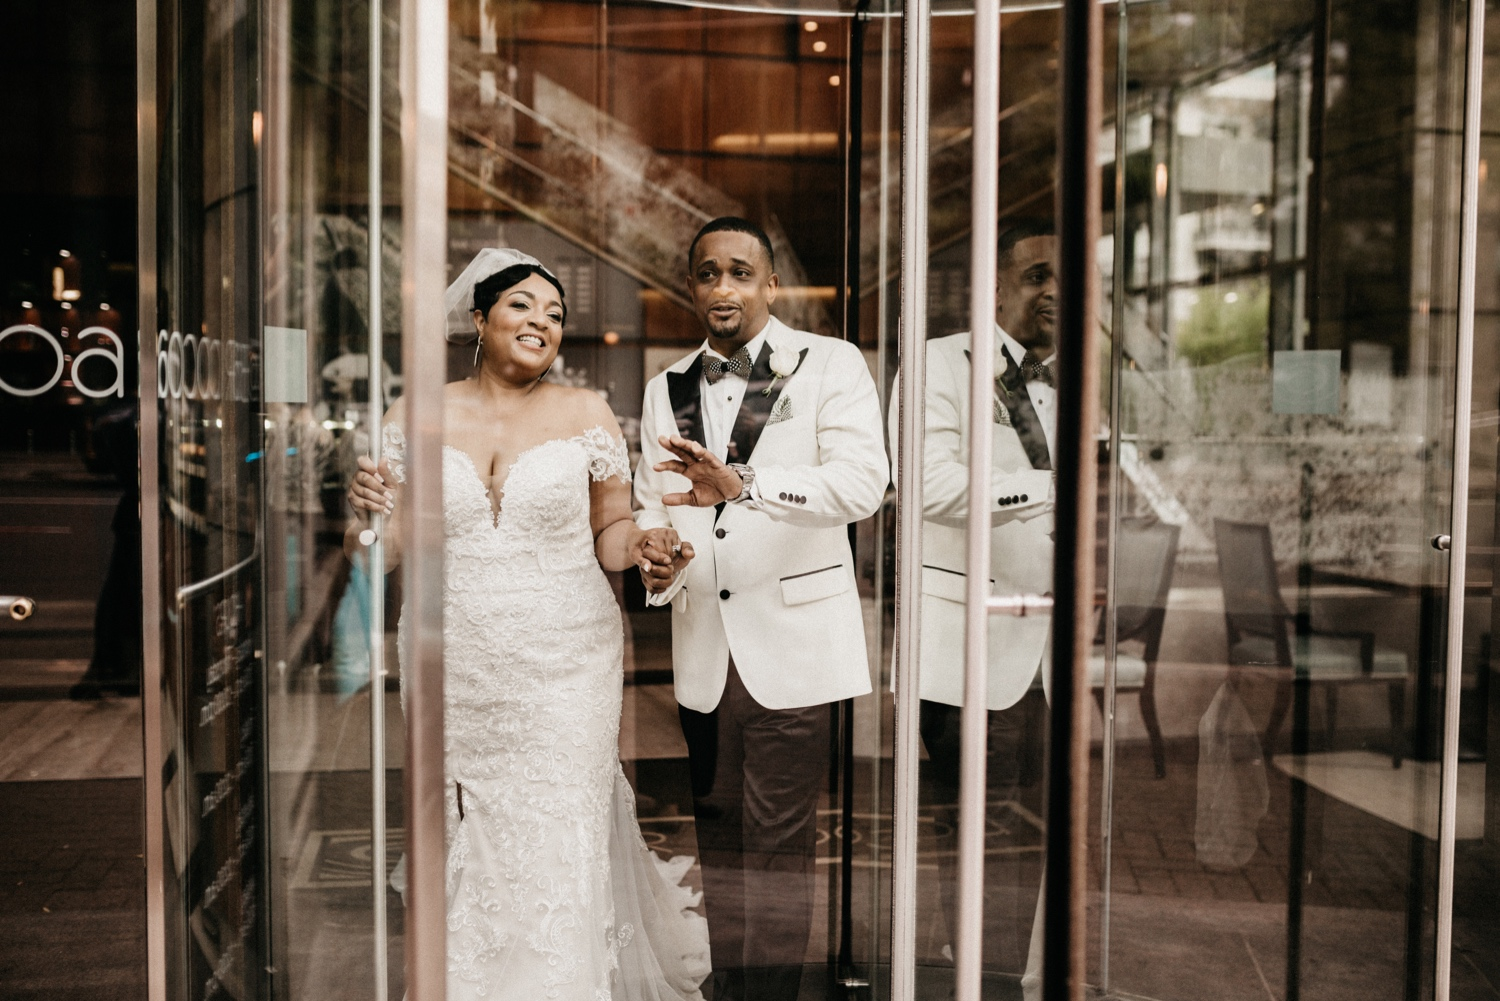 49_Ritz-carlton-wedding_charlotteNC_charlotteweddingphotographer.jpg